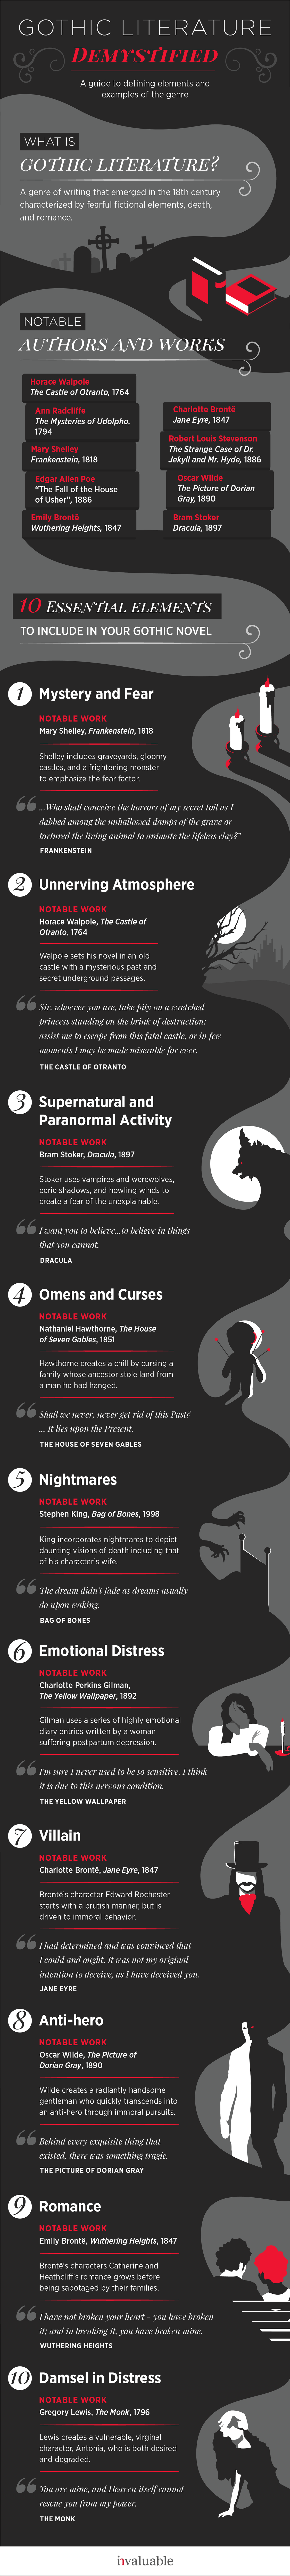 gothic-literature-infographic-1.png